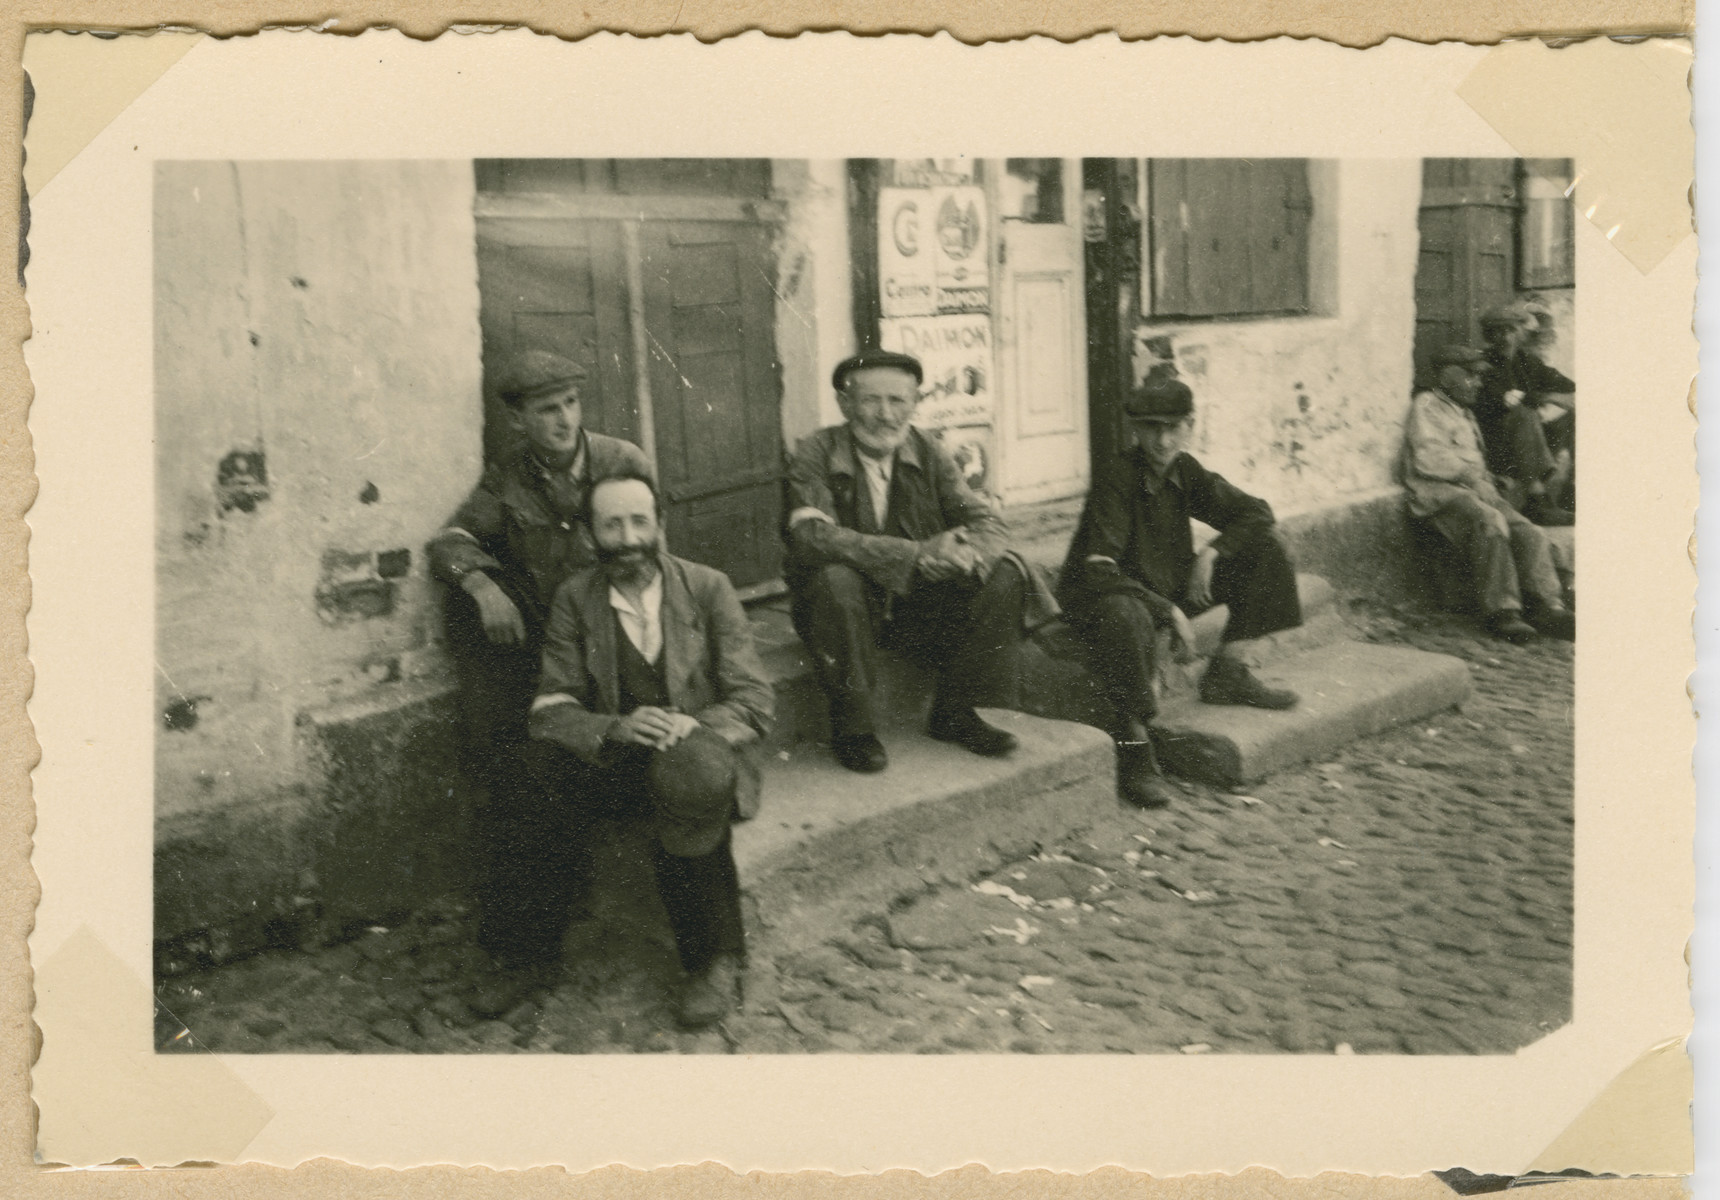 A group of Jewish men wearing armbands sits on the stoop of a building in Deblin-Irena